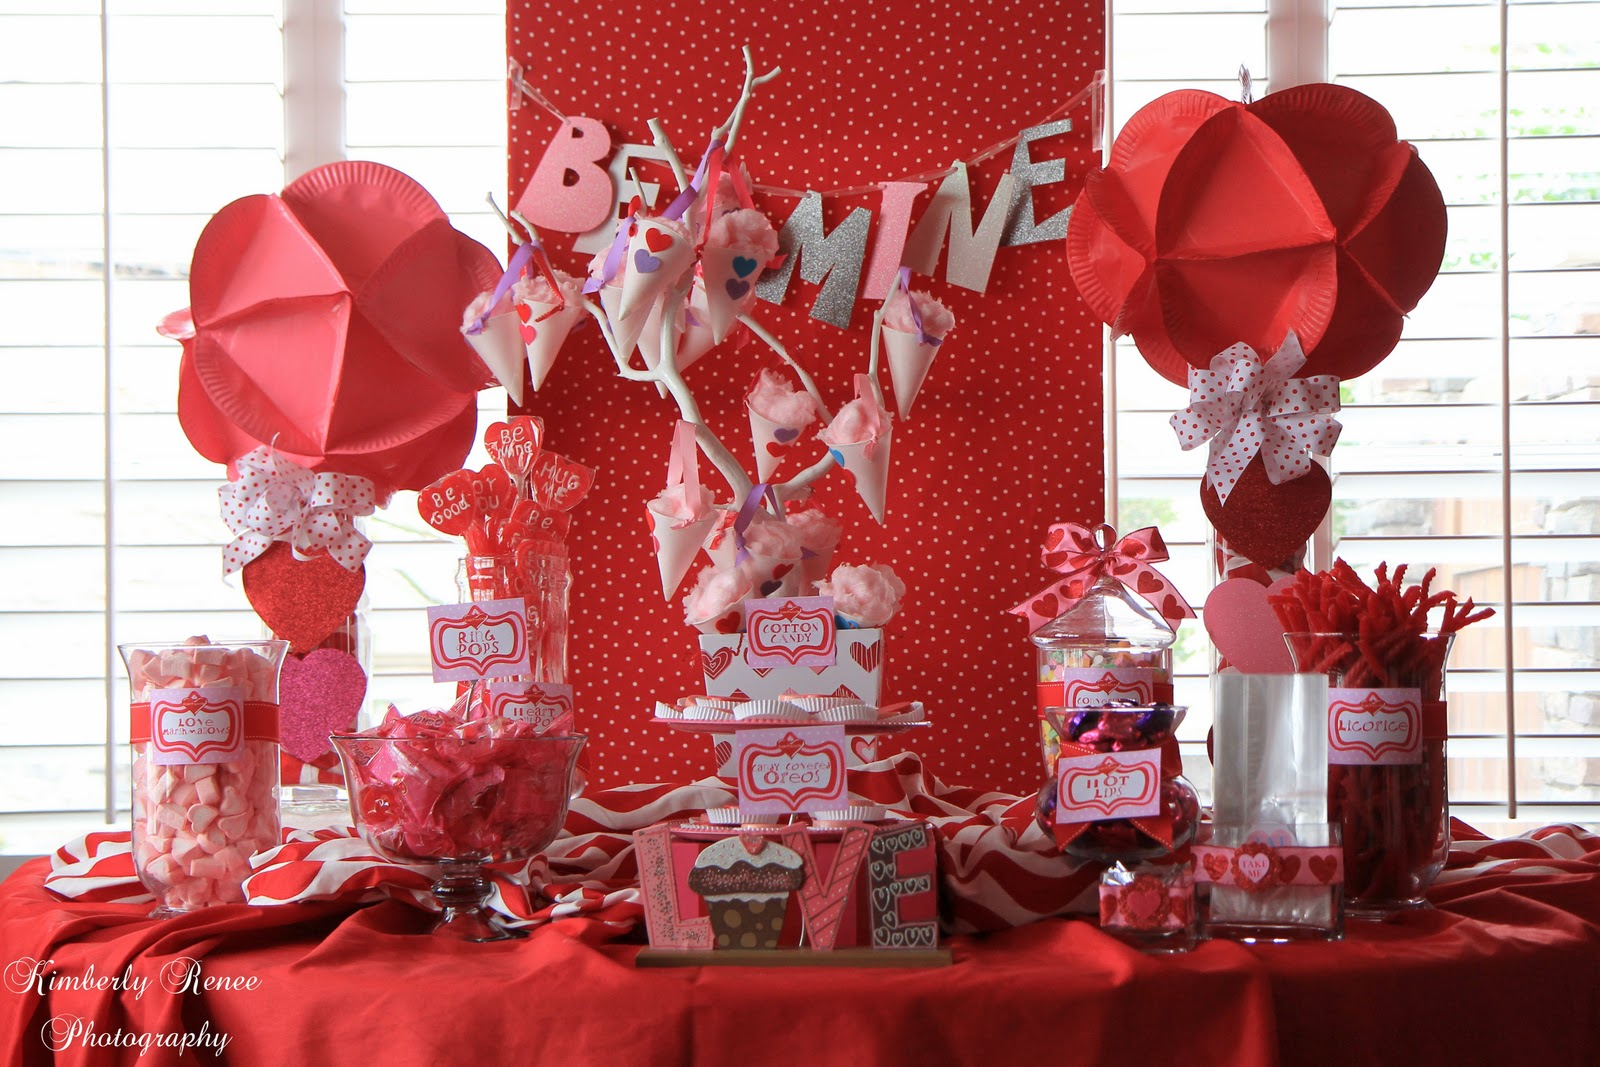 1. French Candy Bar Wrappers2. Valentine Candy Bar Covers3. Udaman Candy Bar Wrapper4. Valentine Candy Bar Wrappers5. Miniature Candy Bar Wrappers6. Valentine Poster with more uses than candy bar covers!7. Custom Candy Bar Wrappers8. Valentine Conversation Candy Bar Covers9.